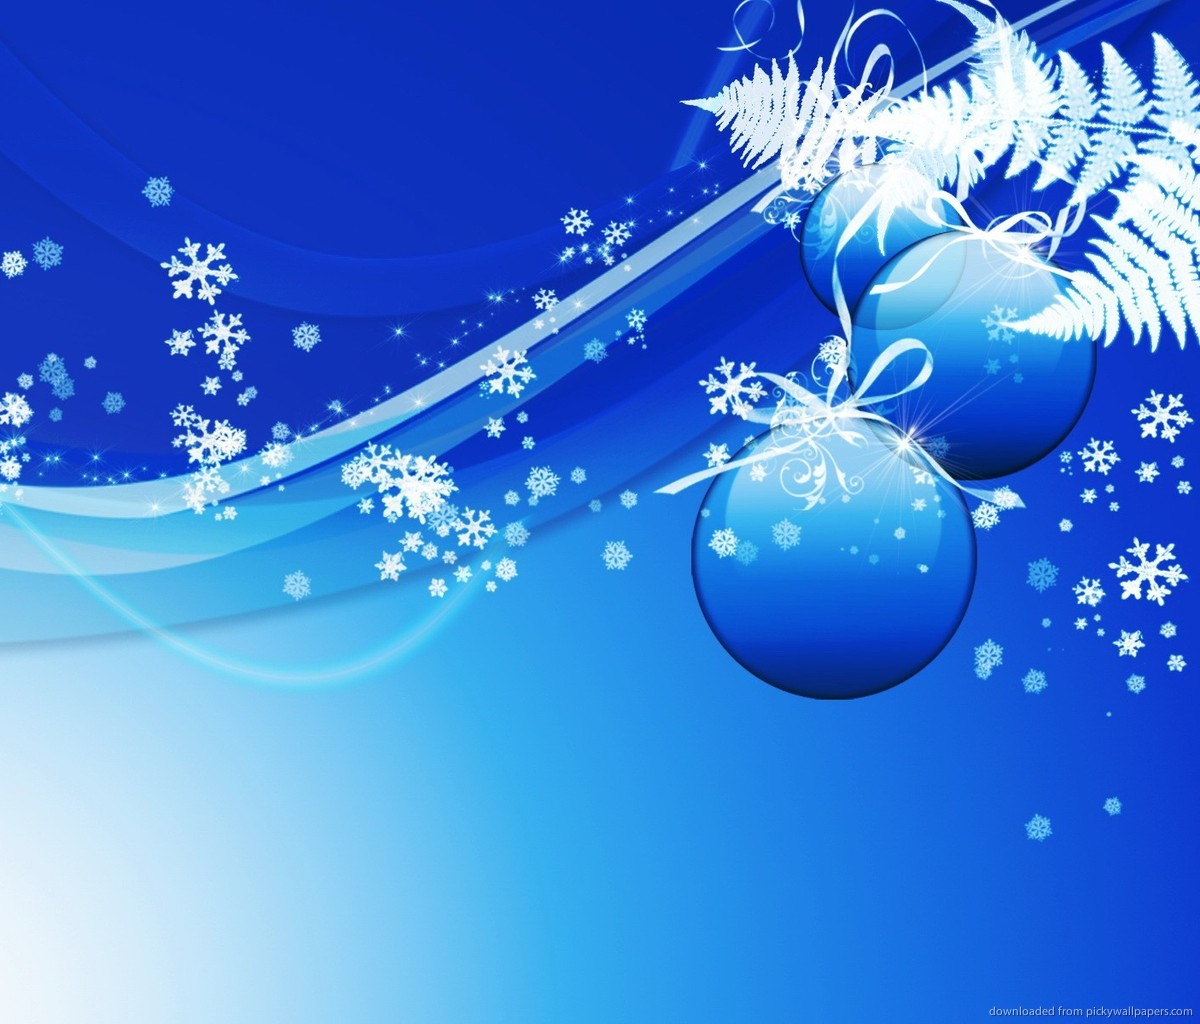 Blue Design Christmas Background Wallpaper For Samsung Galaxy Tab 1200x1024